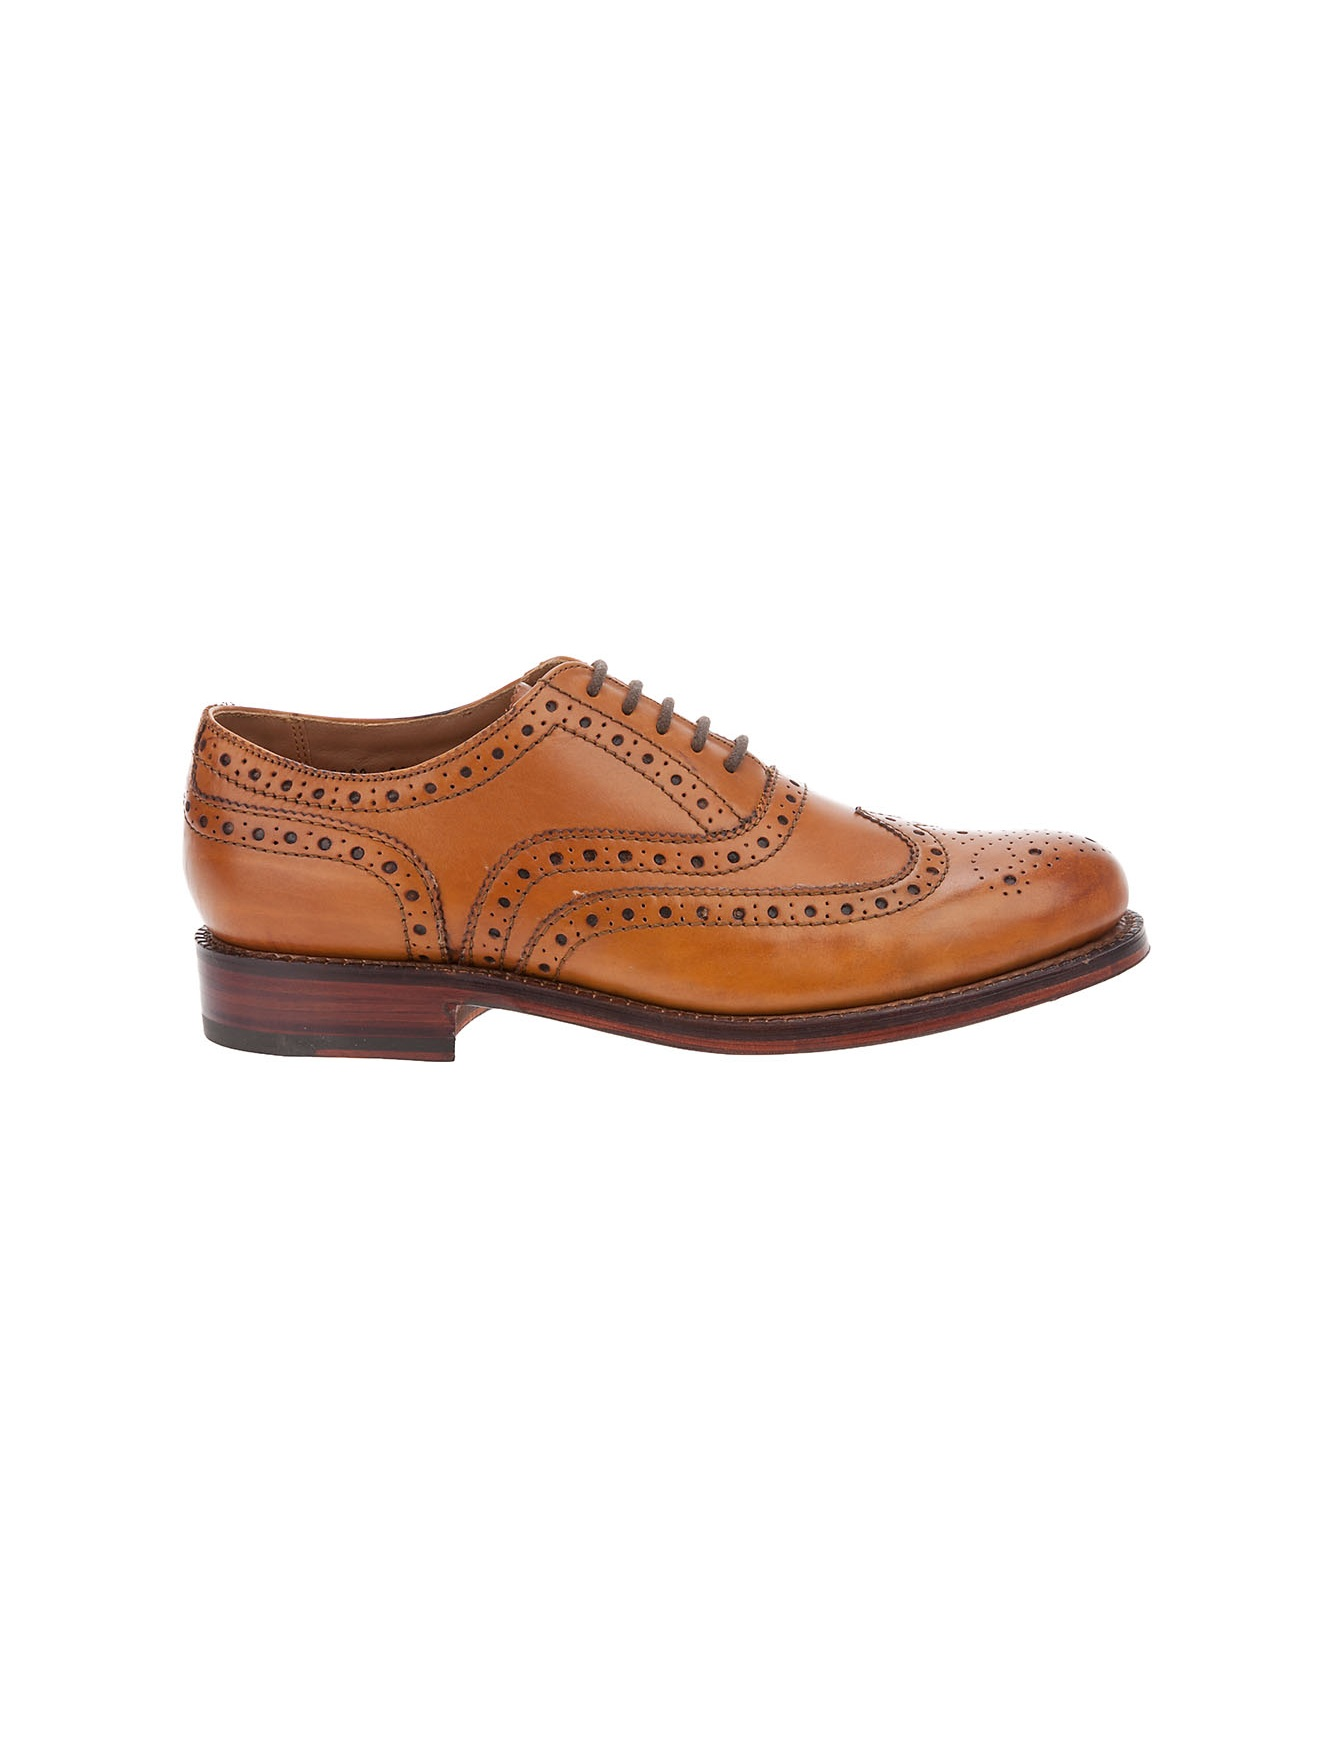 Grenson Brogue Shoe In Brown For Men Tan Lyst